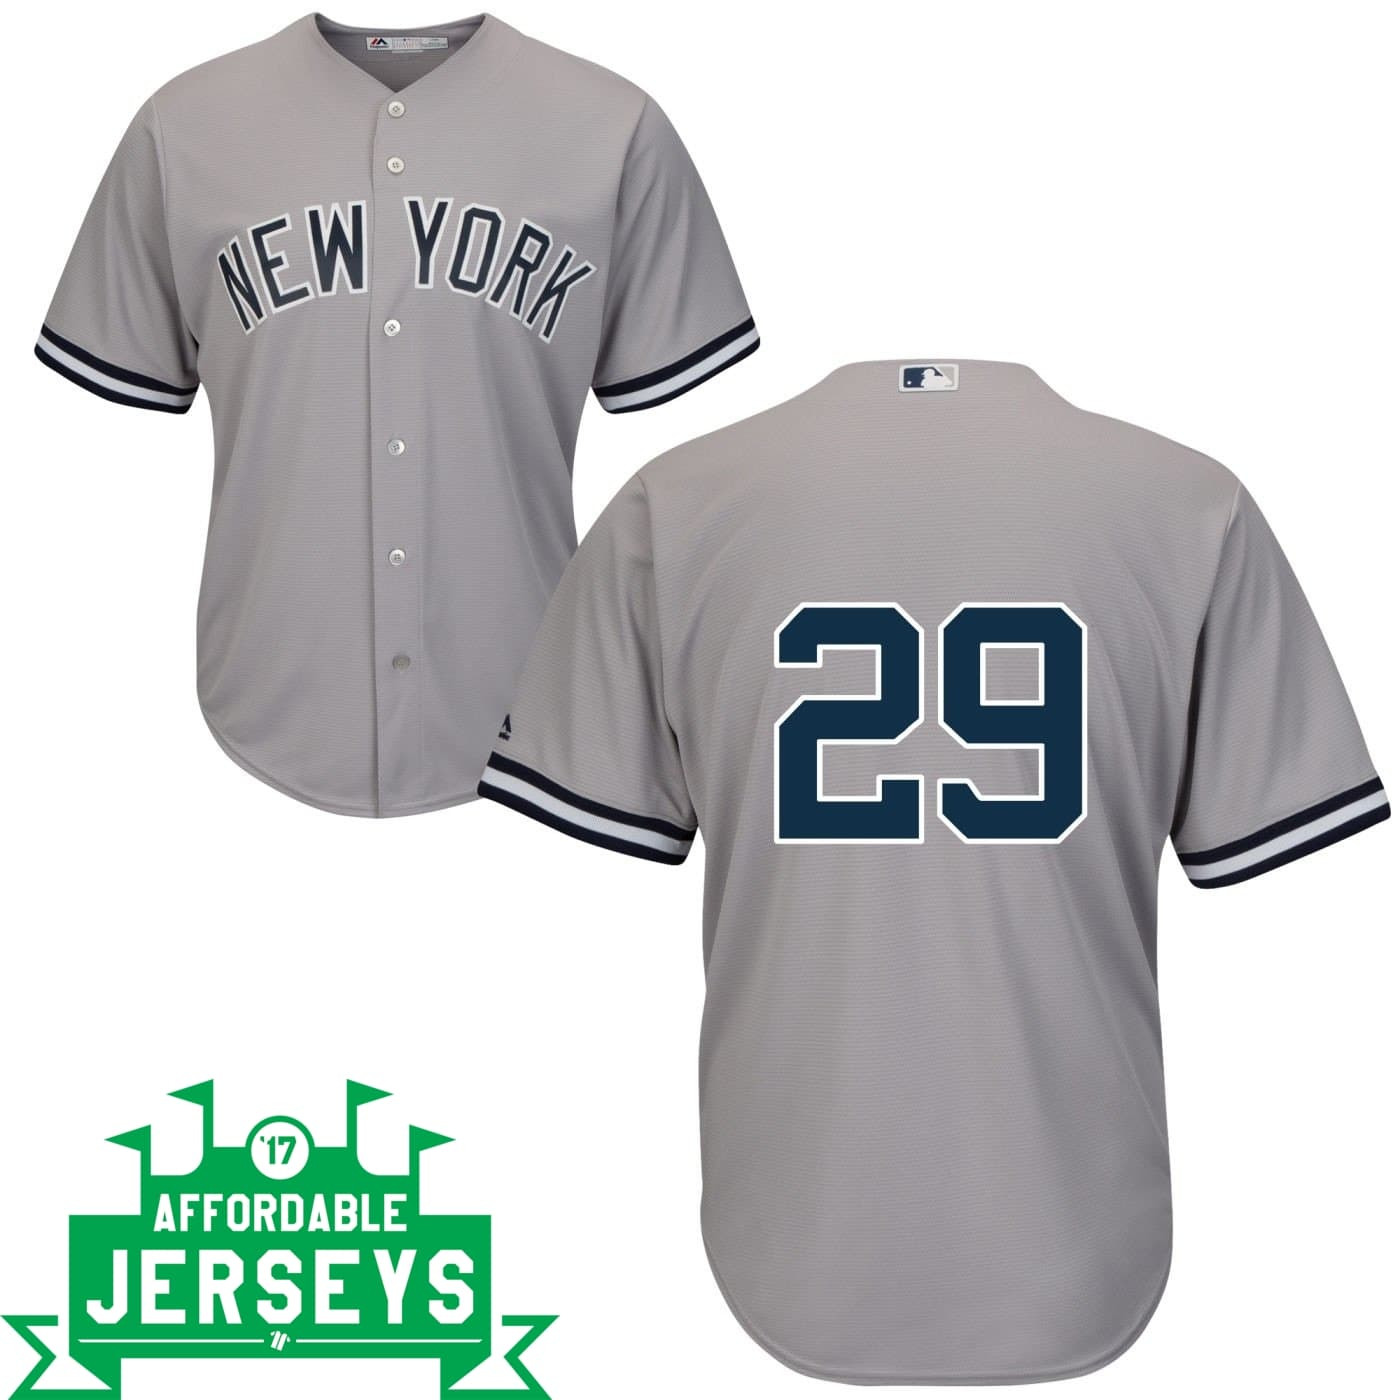 Gio Urshela Road Cool Base Player Jersey - AffordableJerseys.com